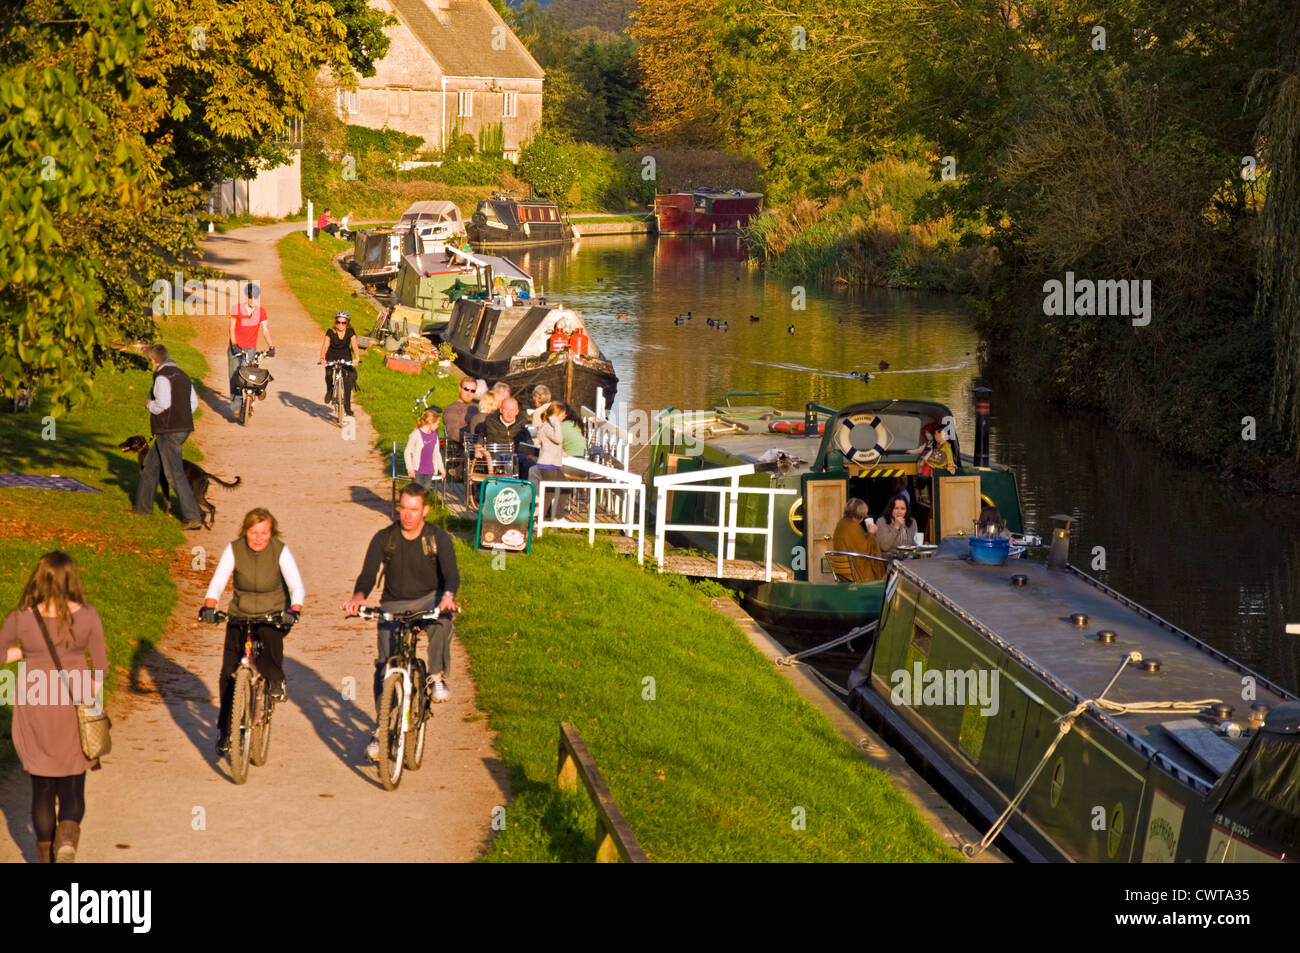 Customer sitting by the Kennet and Avon canal at the Raft Cafe Boat as people walk or cycle on the towpath - Stock Image